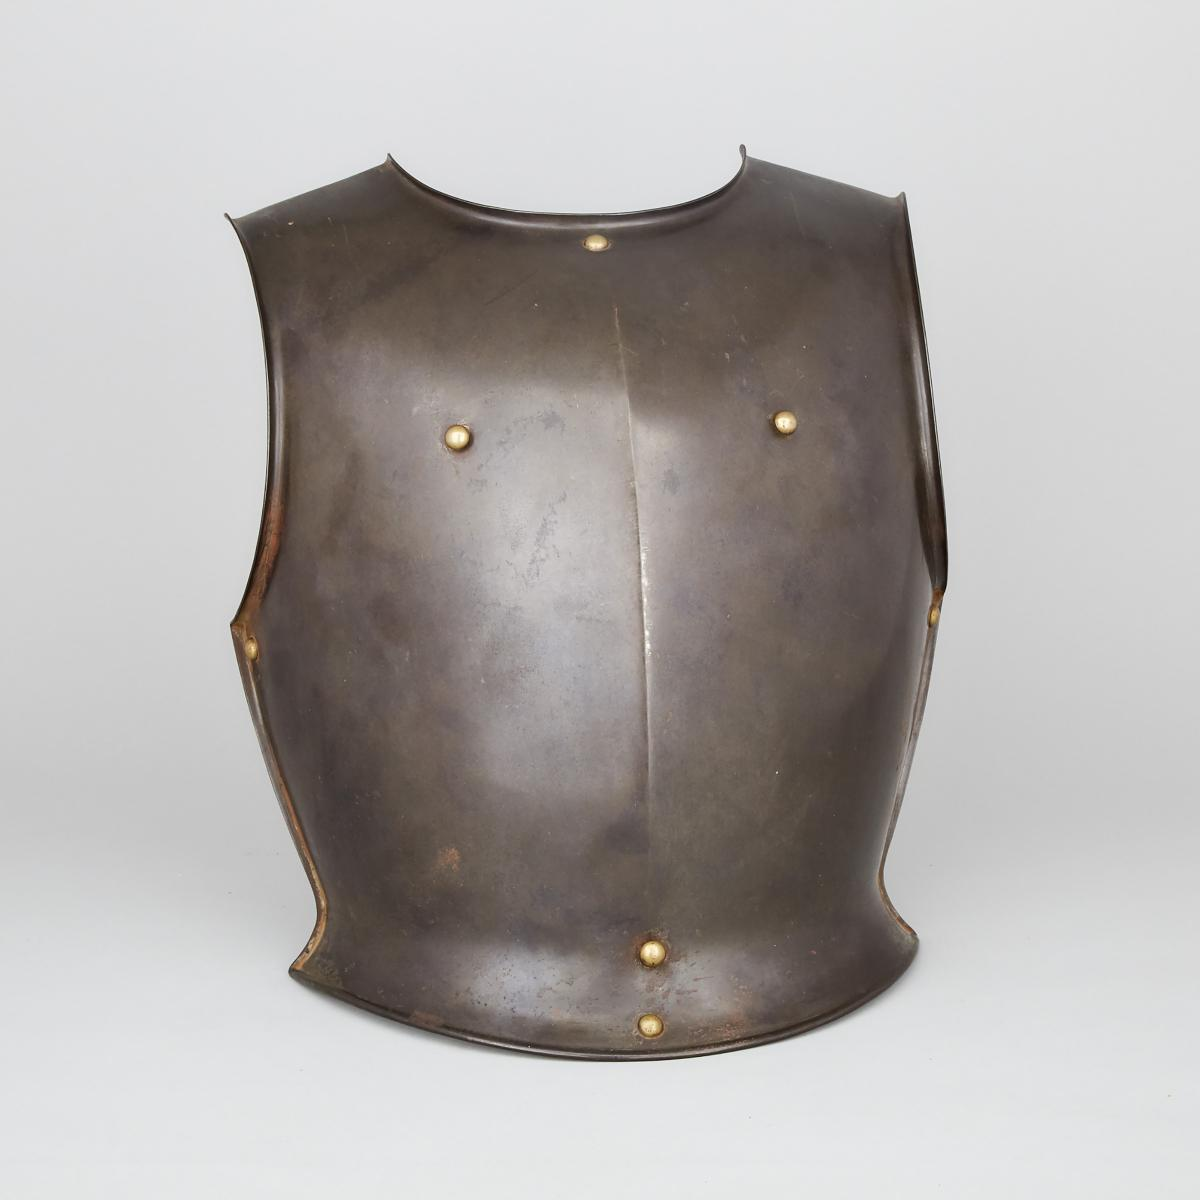 French Cuirassier's Breastplate, early 19th century, height 16 in — 40.6 cm